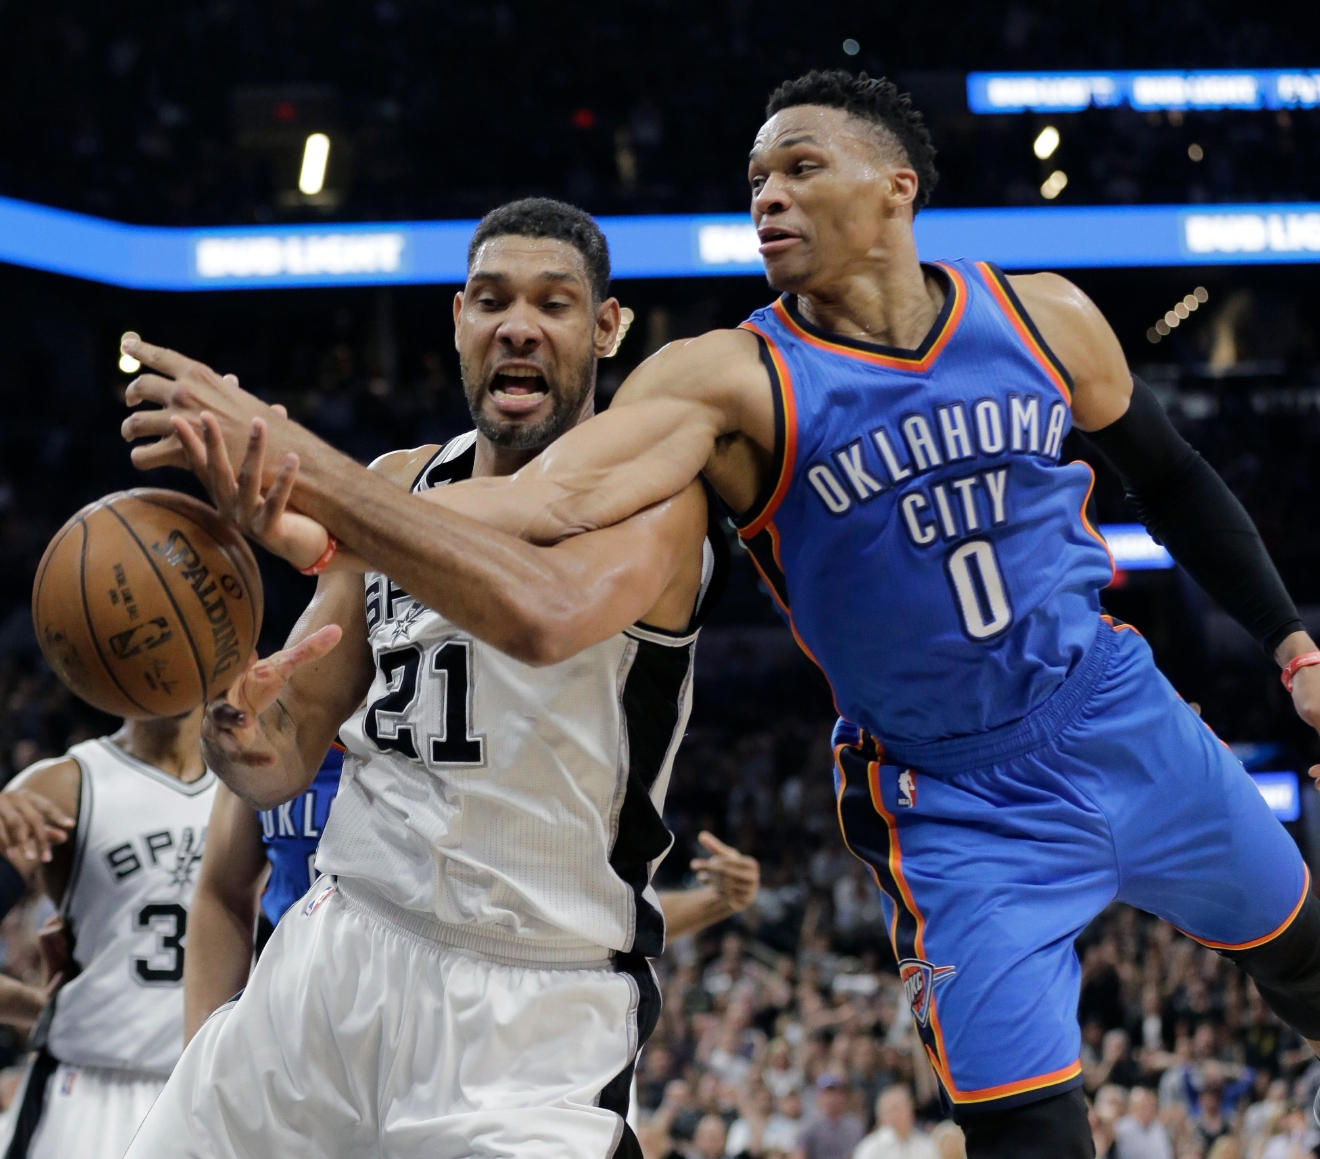 San Antonio Spurs forward Tim Duncan (21) and Oklahoma City Thunder guard Russell Westbrook (0) chase a loose ball during the second half in Game 5 of a second-round NBA basketball playoff series, Tuesday, May 10, 2016, in San Antonio. Oklahoma City won 95-91. (AP Photo/Eric Gay)